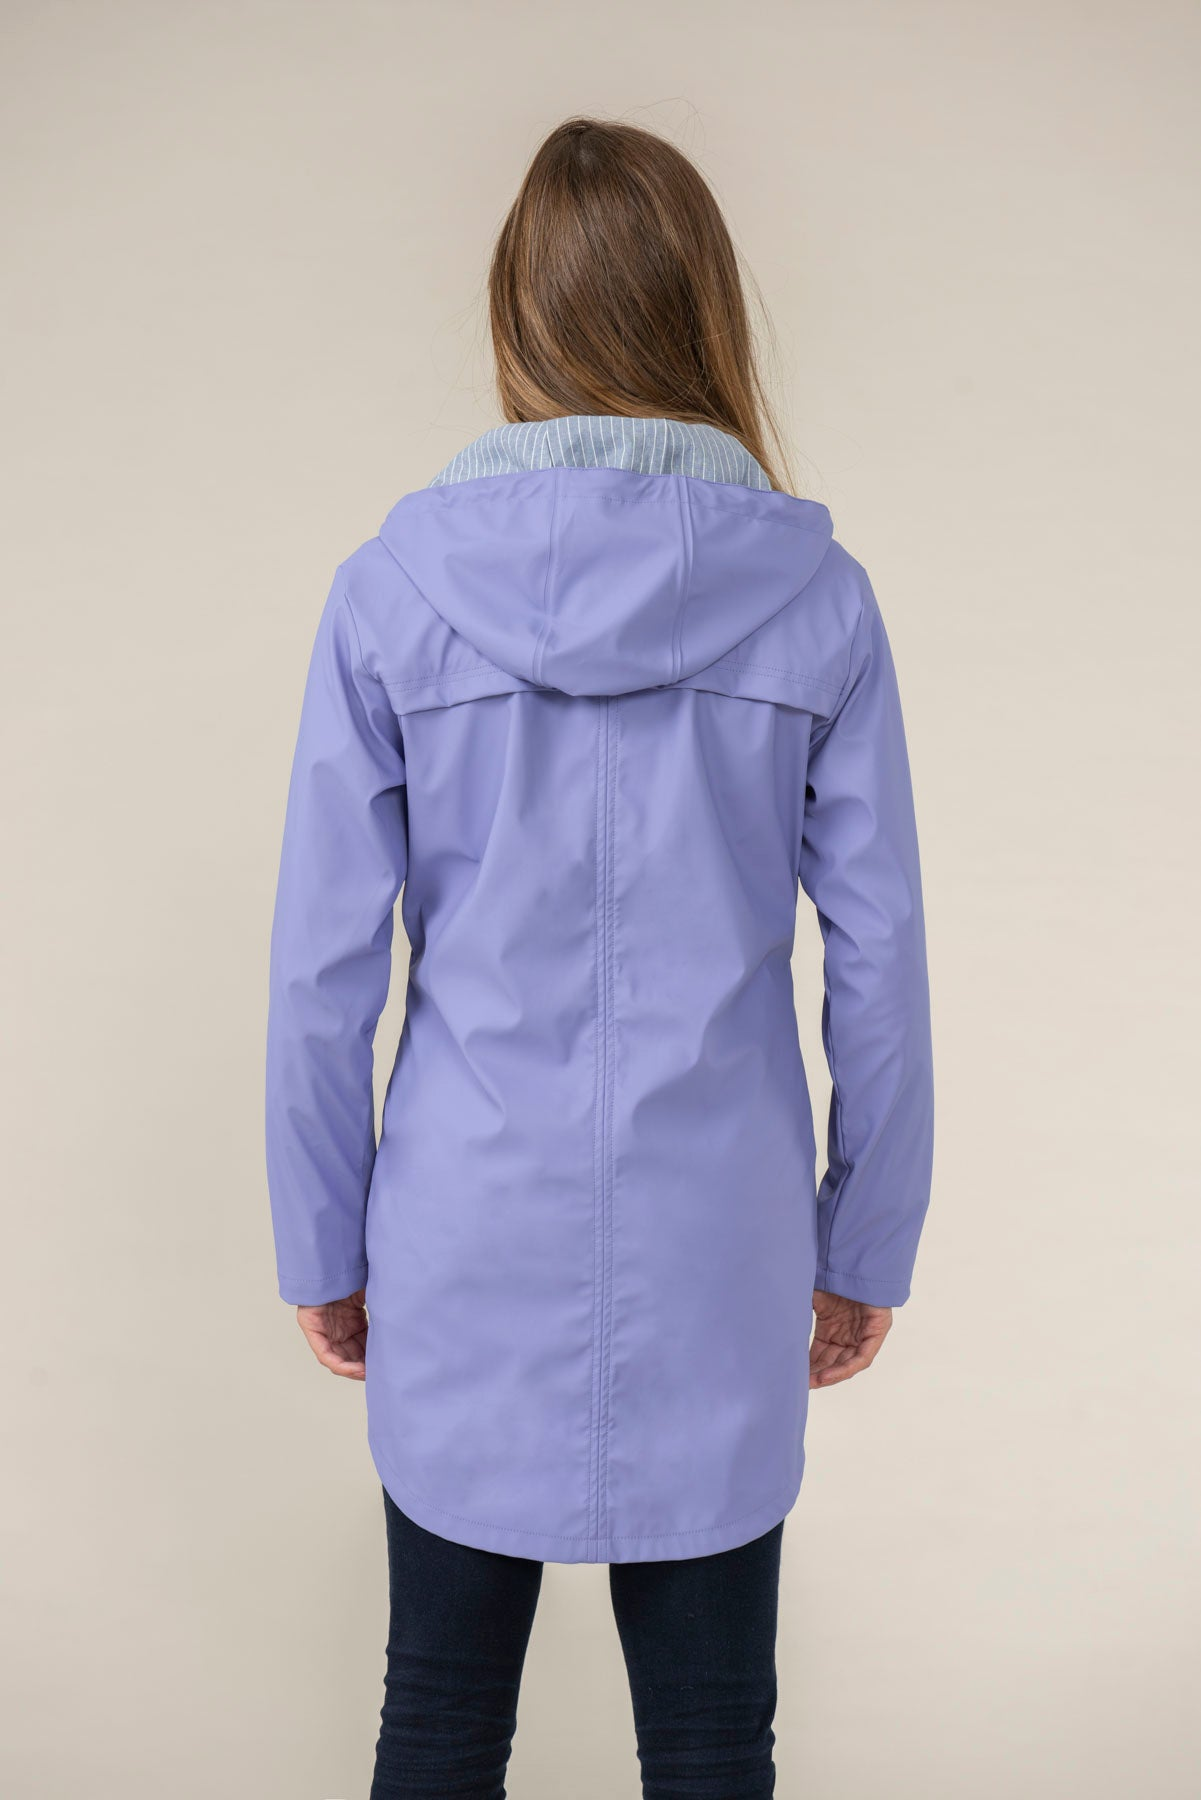 Women's Coats - Bowline - Purple Raincoat